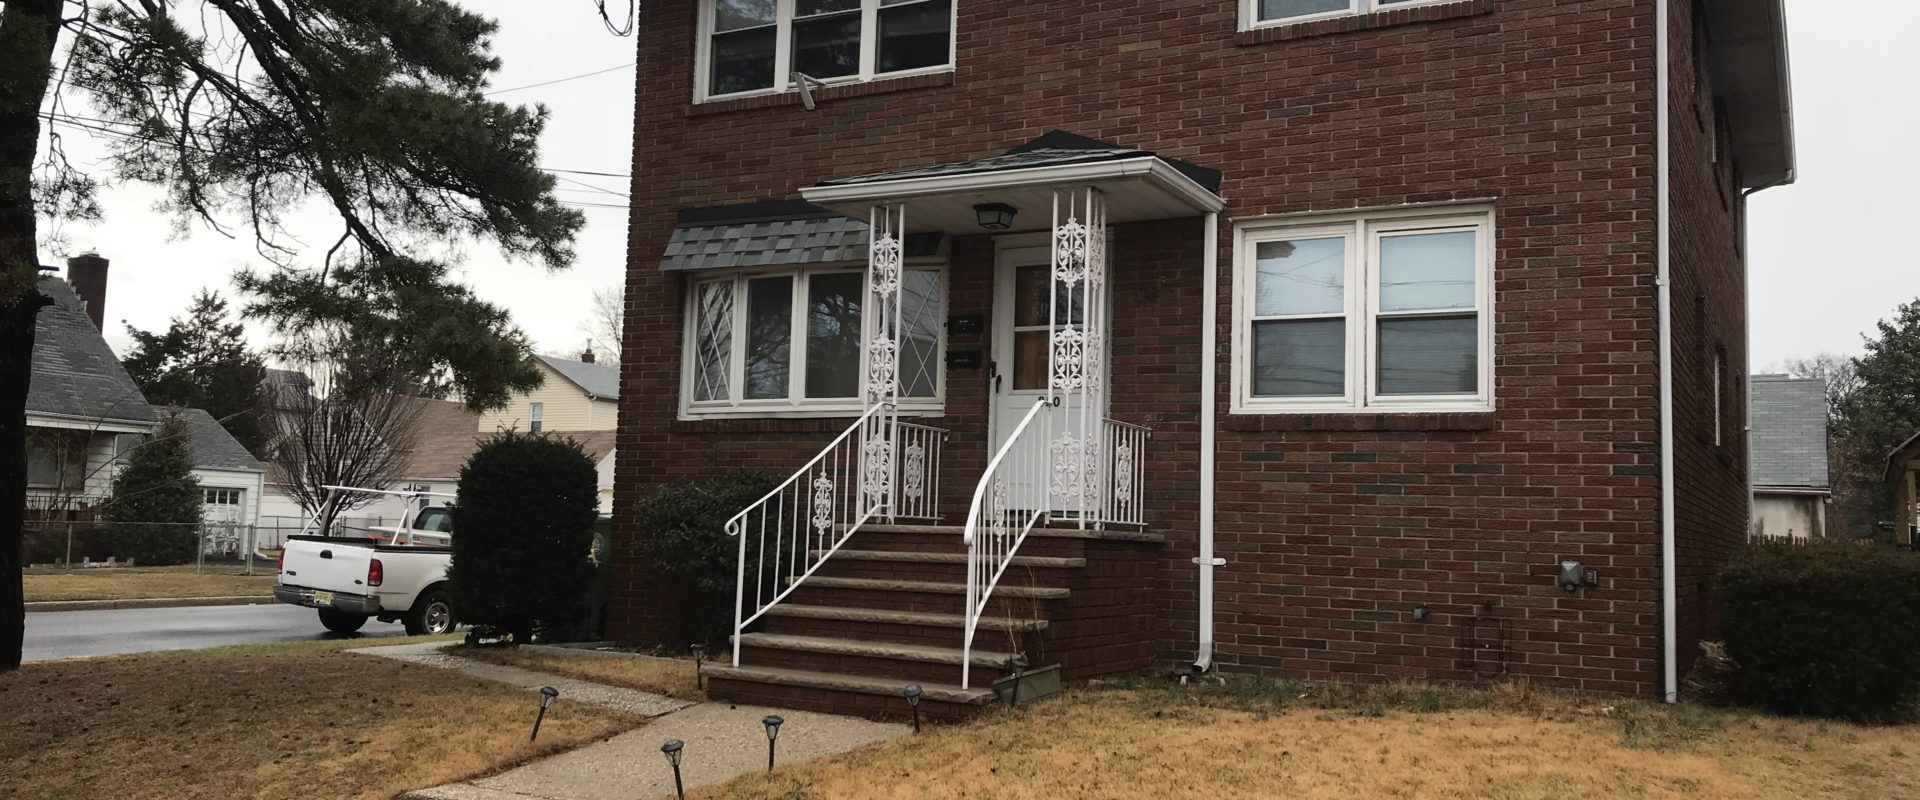 850 Seymour Ave, Linden, NJ 07036